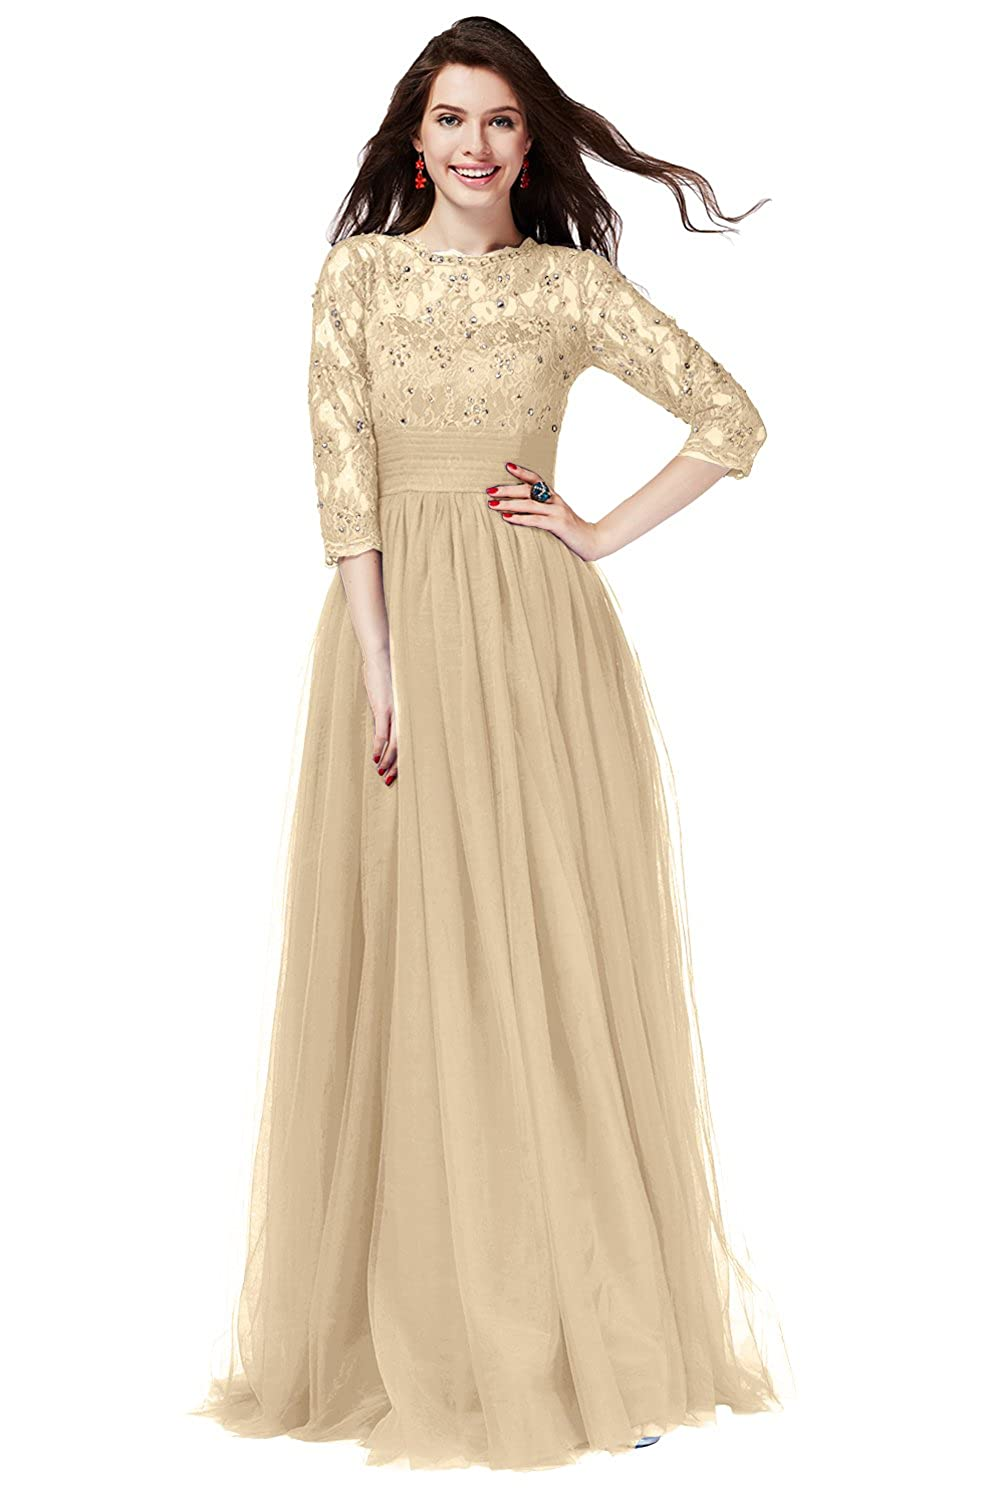 Champagne Long QY Bride Gorgeous Lace Bridal Party Dresses for Bridesmaid 3 4 Sleeve